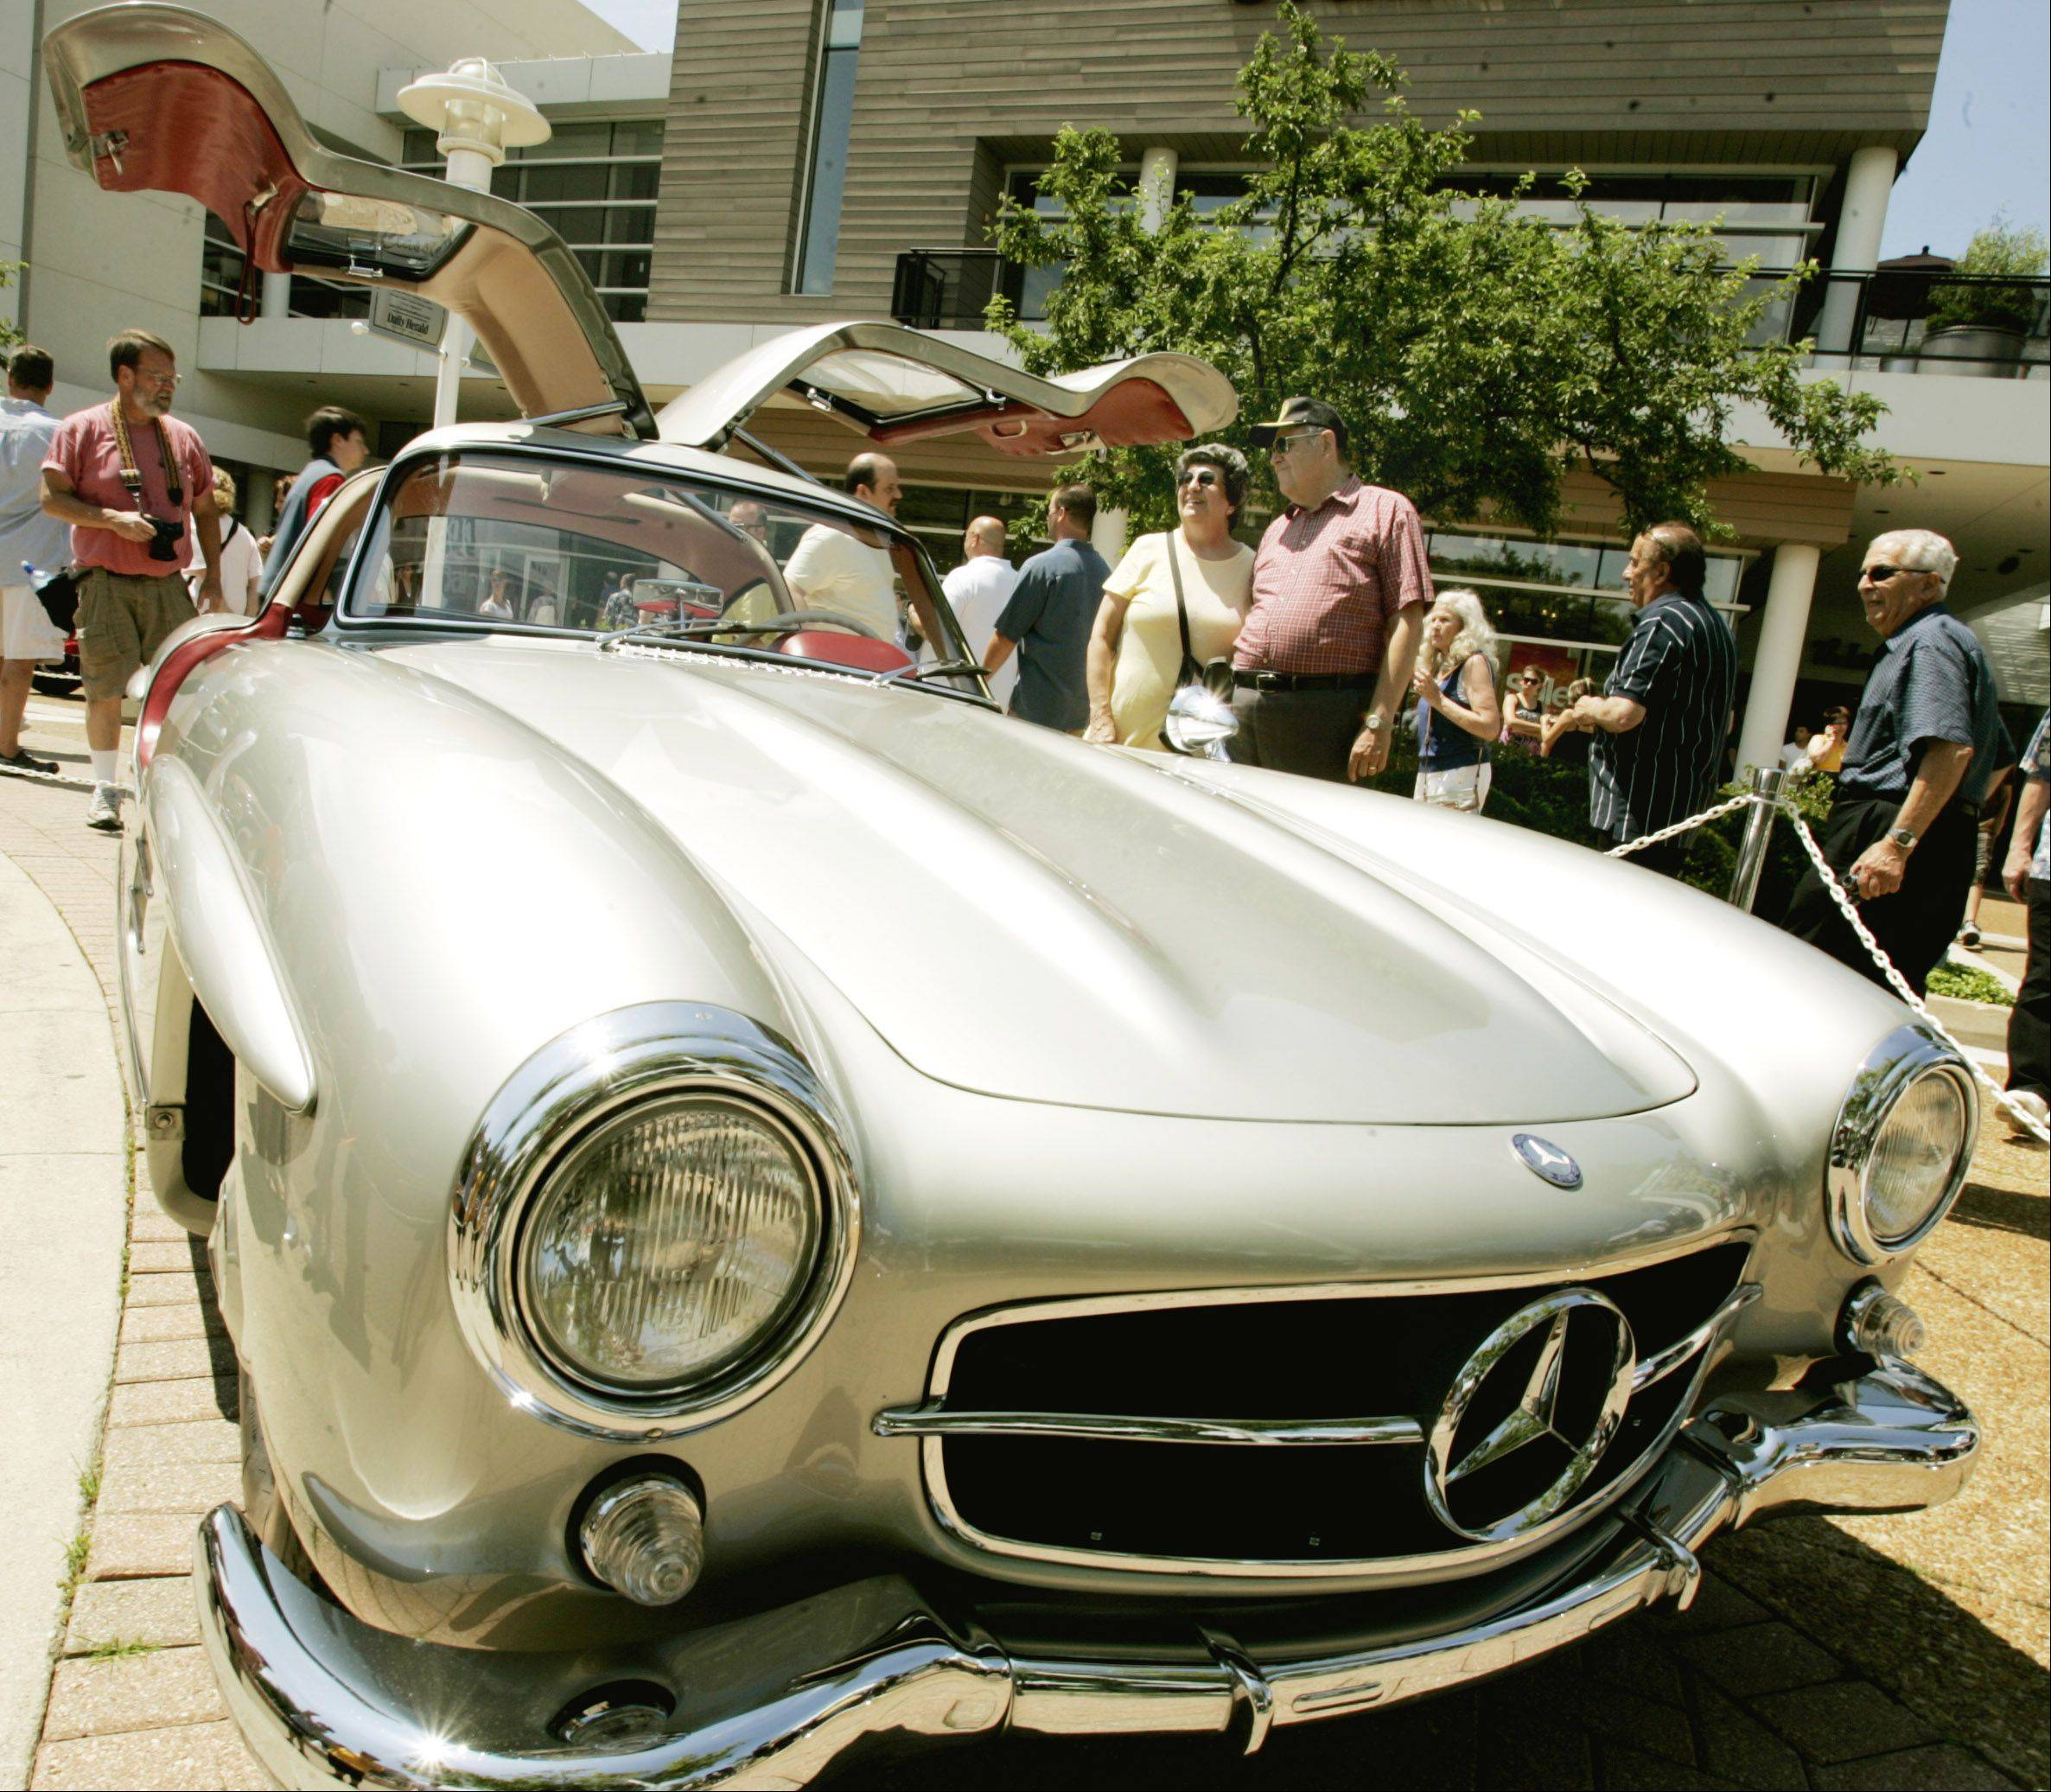 The Father's Day Classic Car Show will feature 100 well-kept vehicles on display Sunday within Oakbrook Center shopping mall. Organizers say the event has become a place where owners and aficionados swap stories and memories.